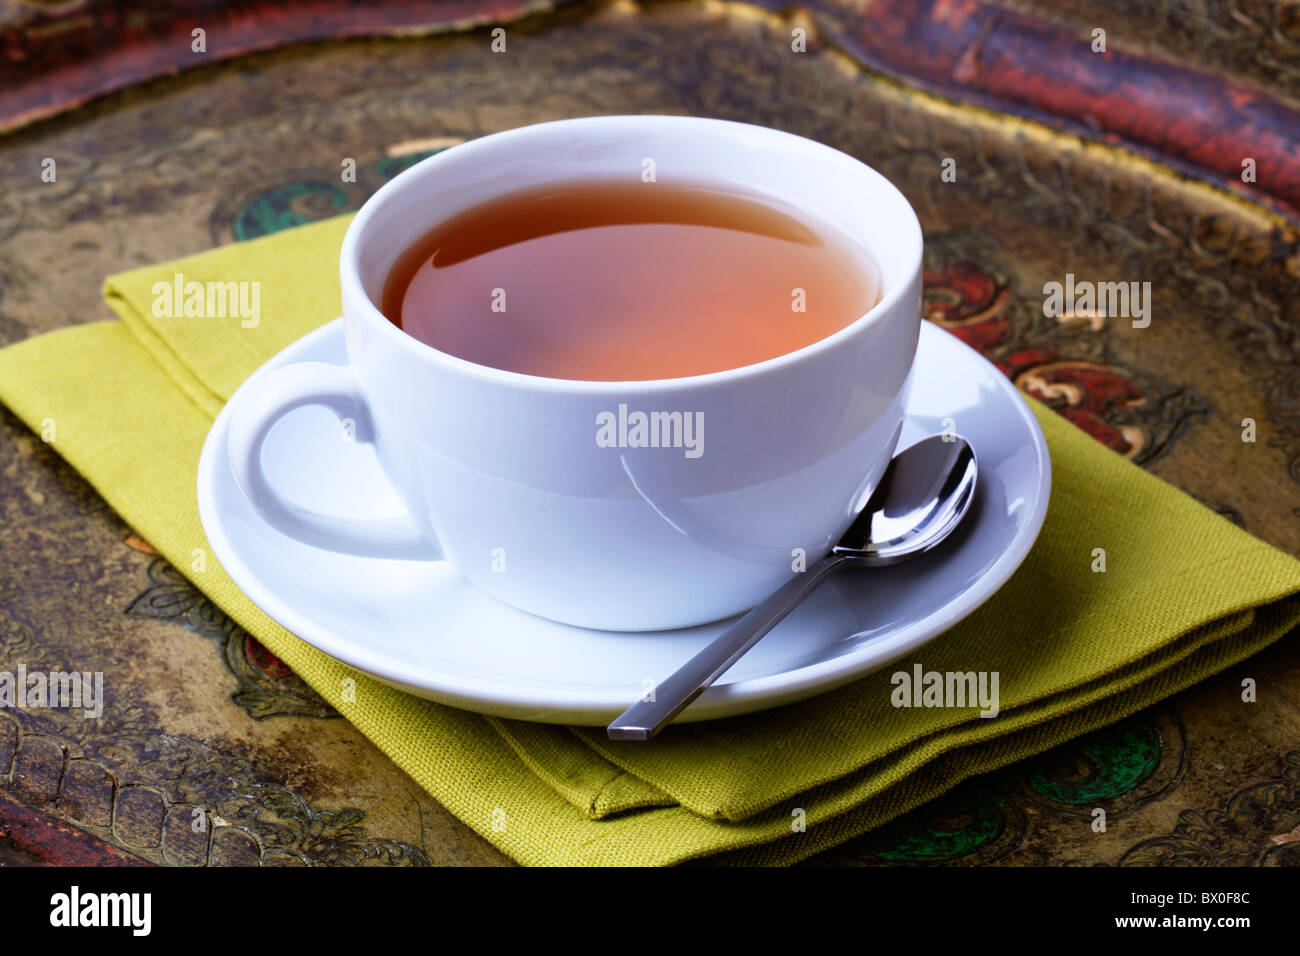 Cup of black tea on an antique tray - Stock Image